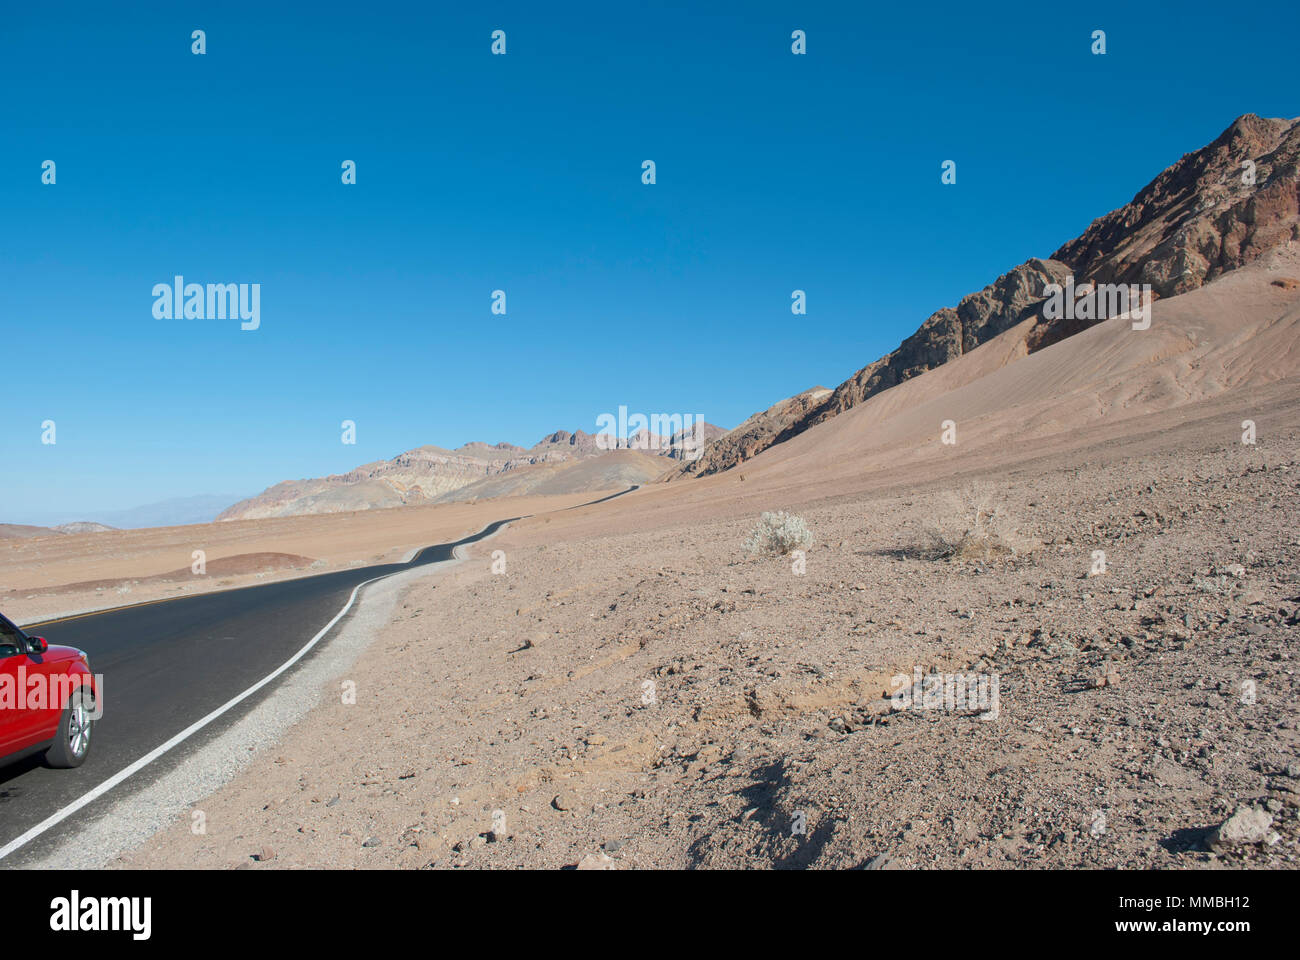 Traveling by car into the wild desert. Vacation destination. Mountains landscape. Hot weather. Dry, thirst  concept, Open panoramic view - Stock Image